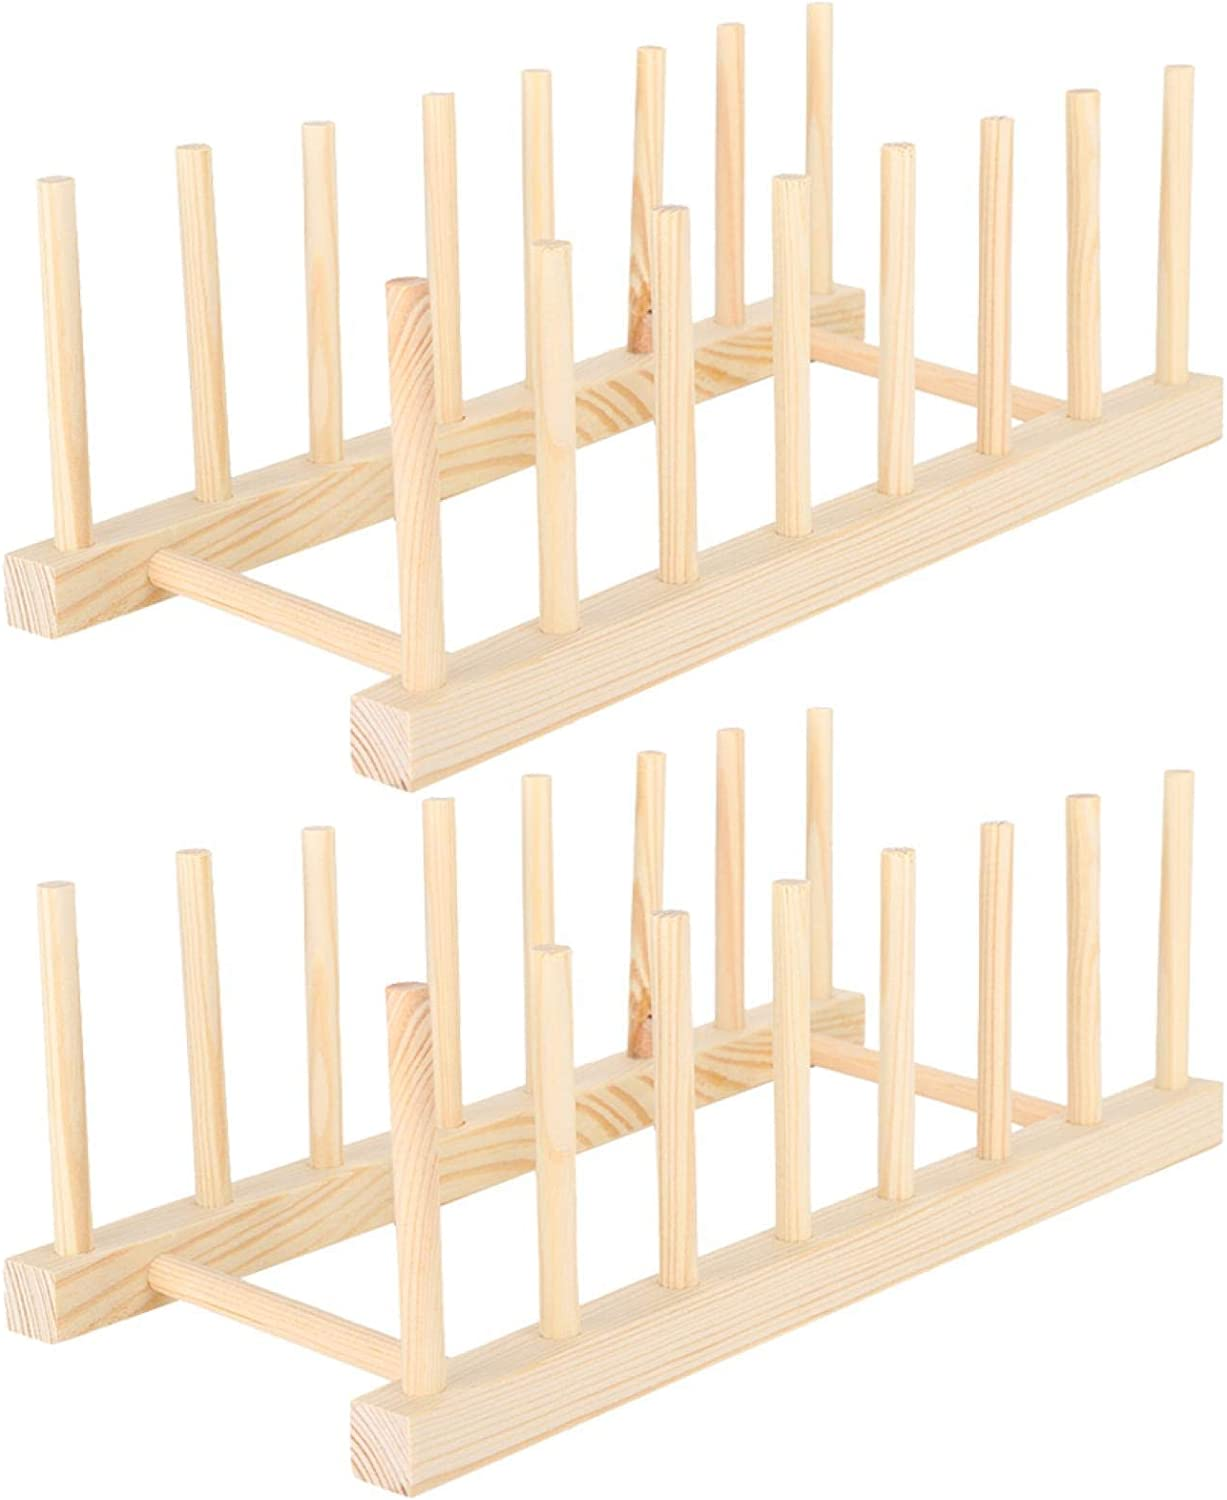 Dish Organization Rack sale Easy Structure Re Fashionable Display Creative